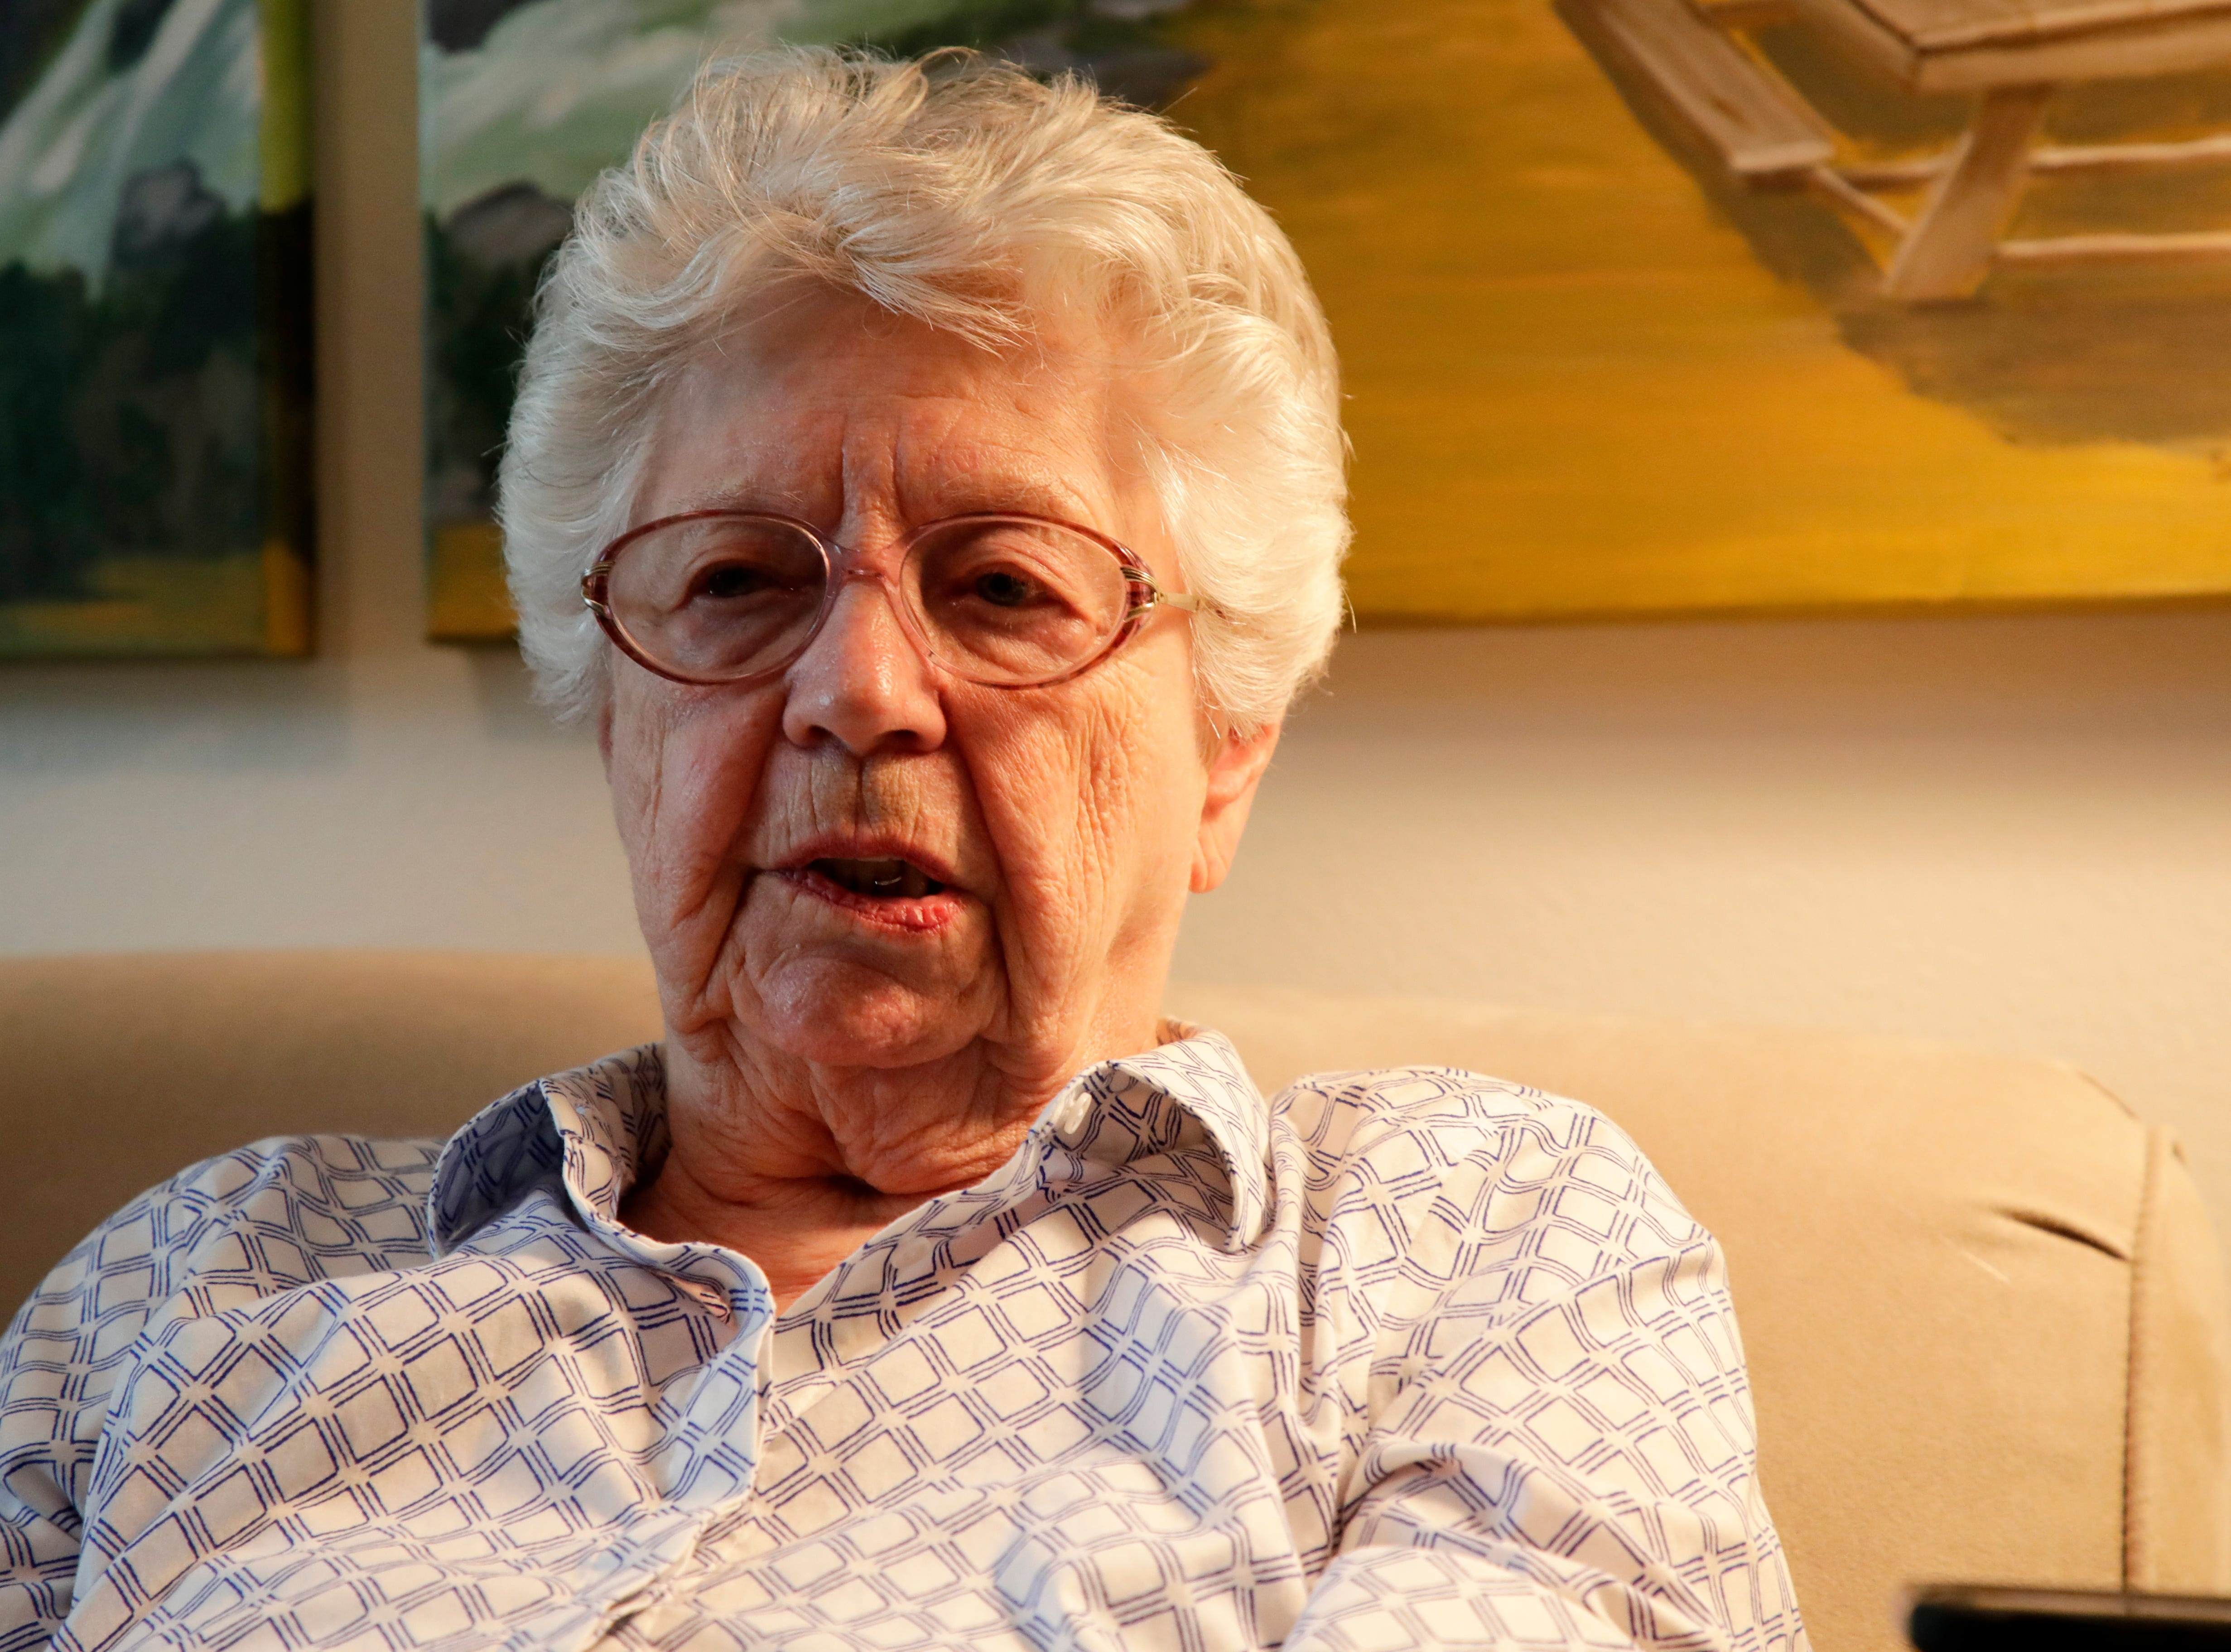 Emily Golz, 92, talks about her brother Earl Baum, who died at Pearl Harbor in 1941. Baum's remains were identified last year through DNA. He will be buried March 8, 2019 at Tallahassee National Cemetery.